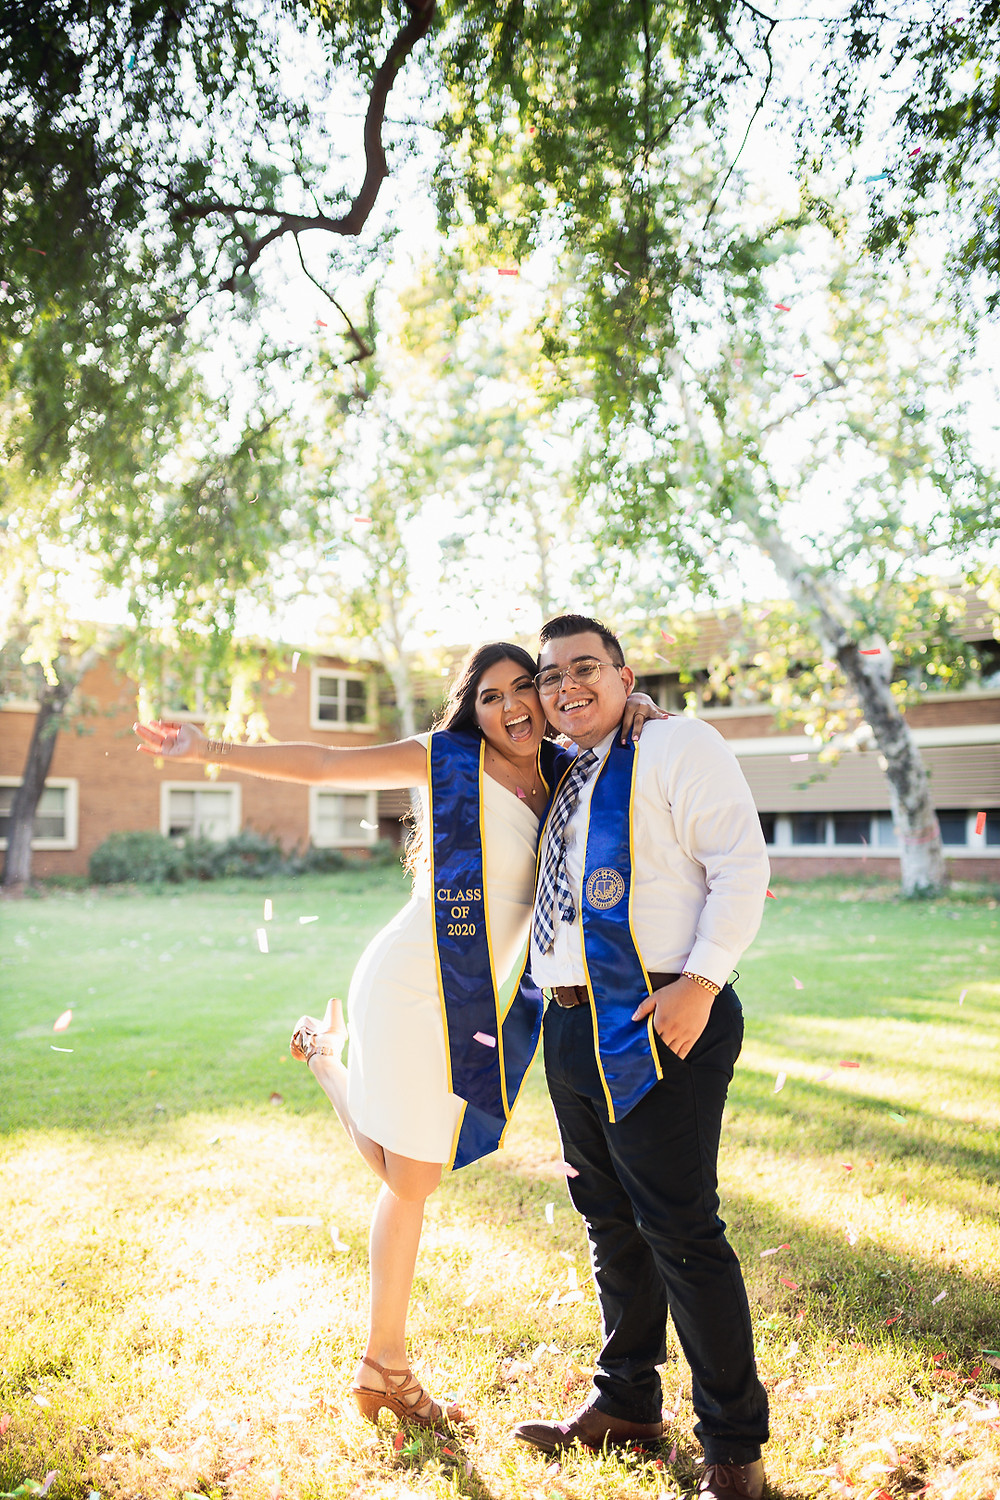 University of California Riverside Graduation Photos | Kassandra and Angel 17